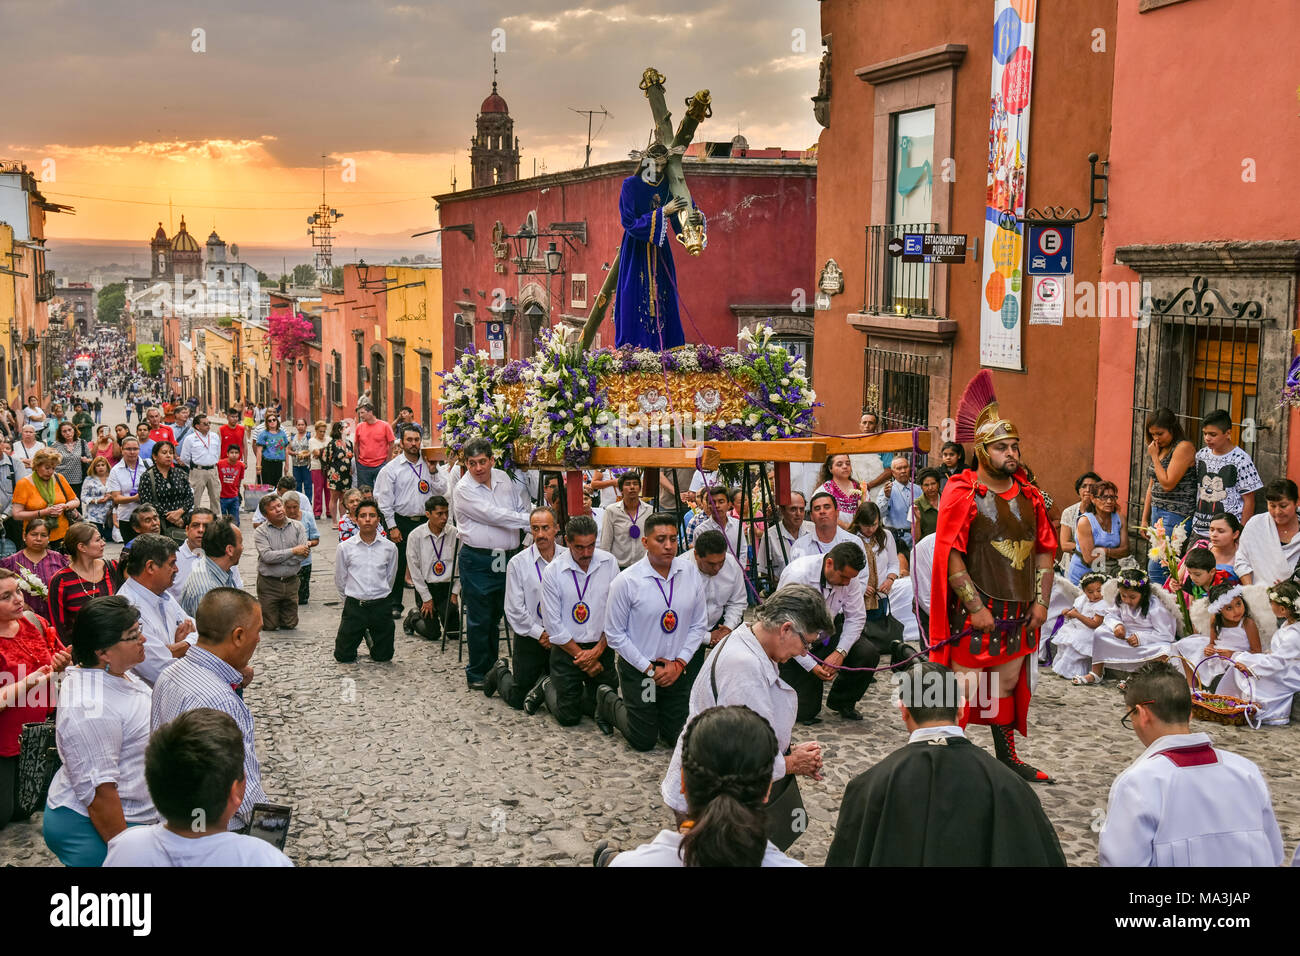 Catholic devotees kneel in prayer during the Las Cruzes del Señor Golpe procession through the streets at sunset as part of Holy Week March 28, 2018 in San Miguel de Allende, Mexico. The event is recreation of the passion of Jesus Christ on his way to Calvary for crucifixion. - Stock Image